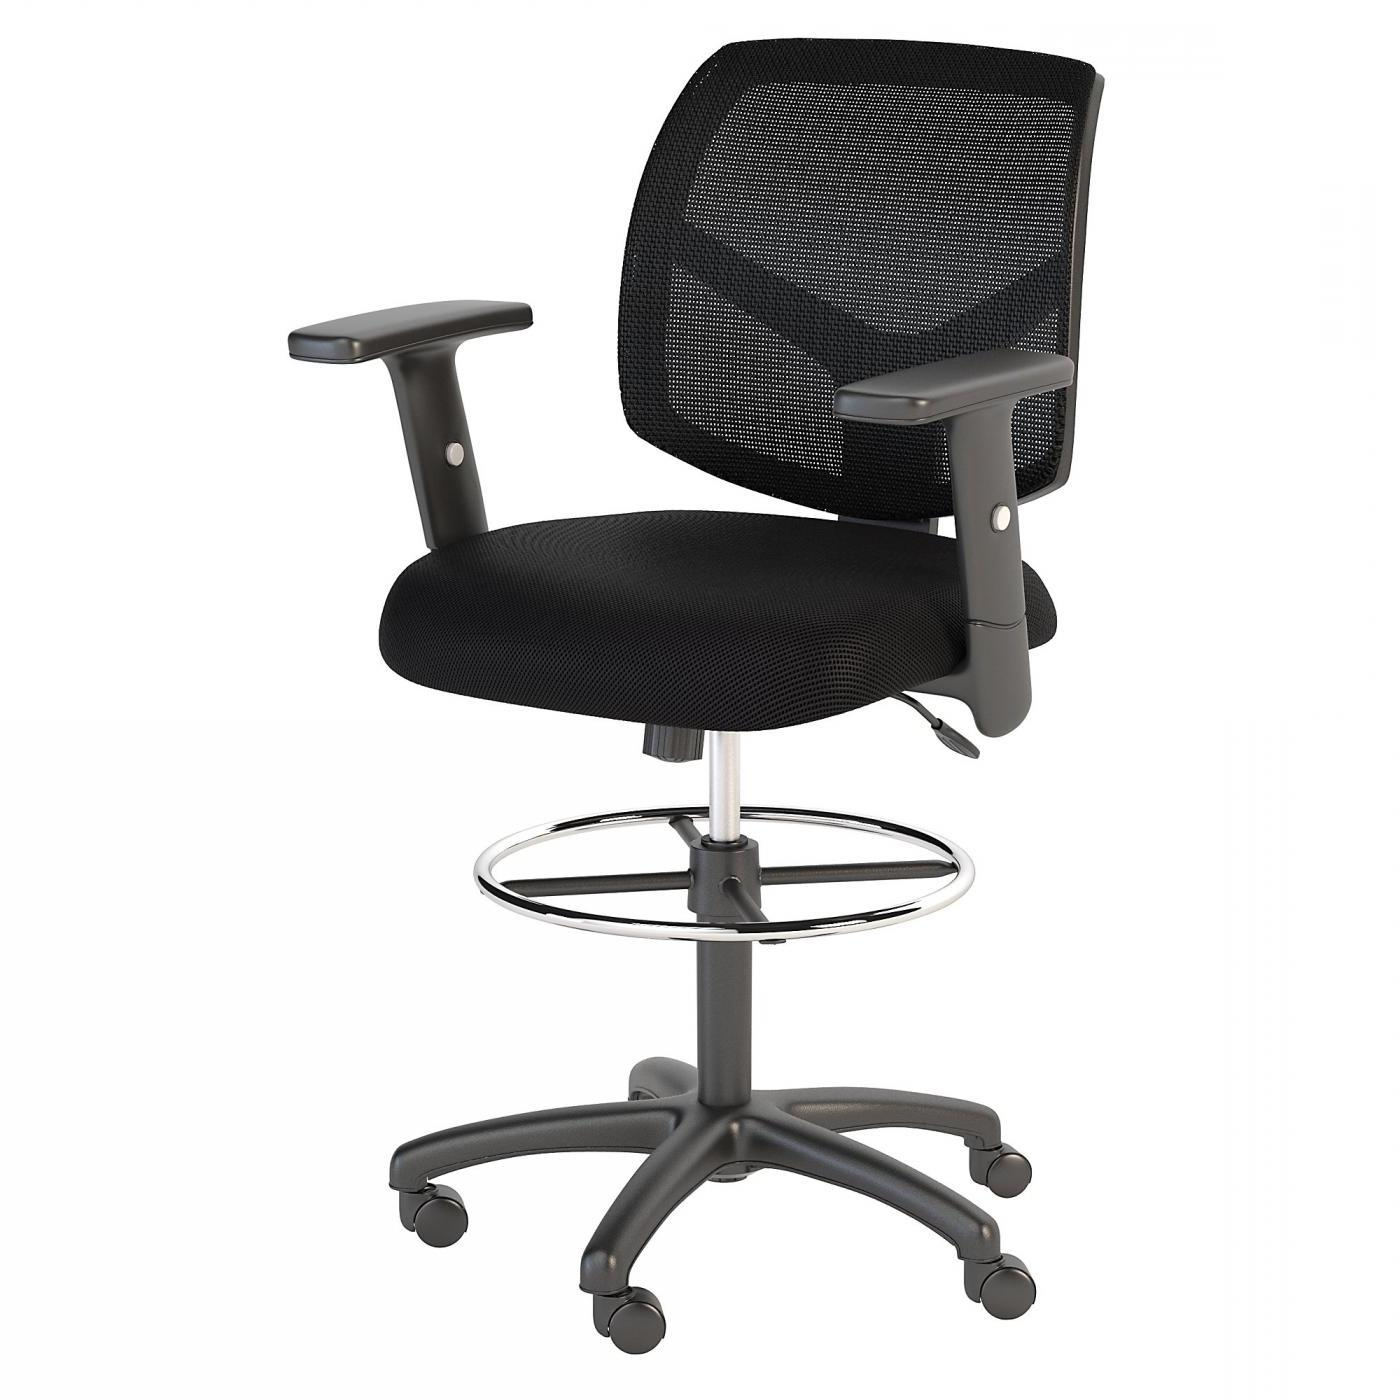 </b></font><b>BUSH BUSINESS FURNITURE PETITE MESH BACK DRAFTING CHAIR WITH CHROME FOOT RING. FREE SHIPPING</font>. </b></font></b>